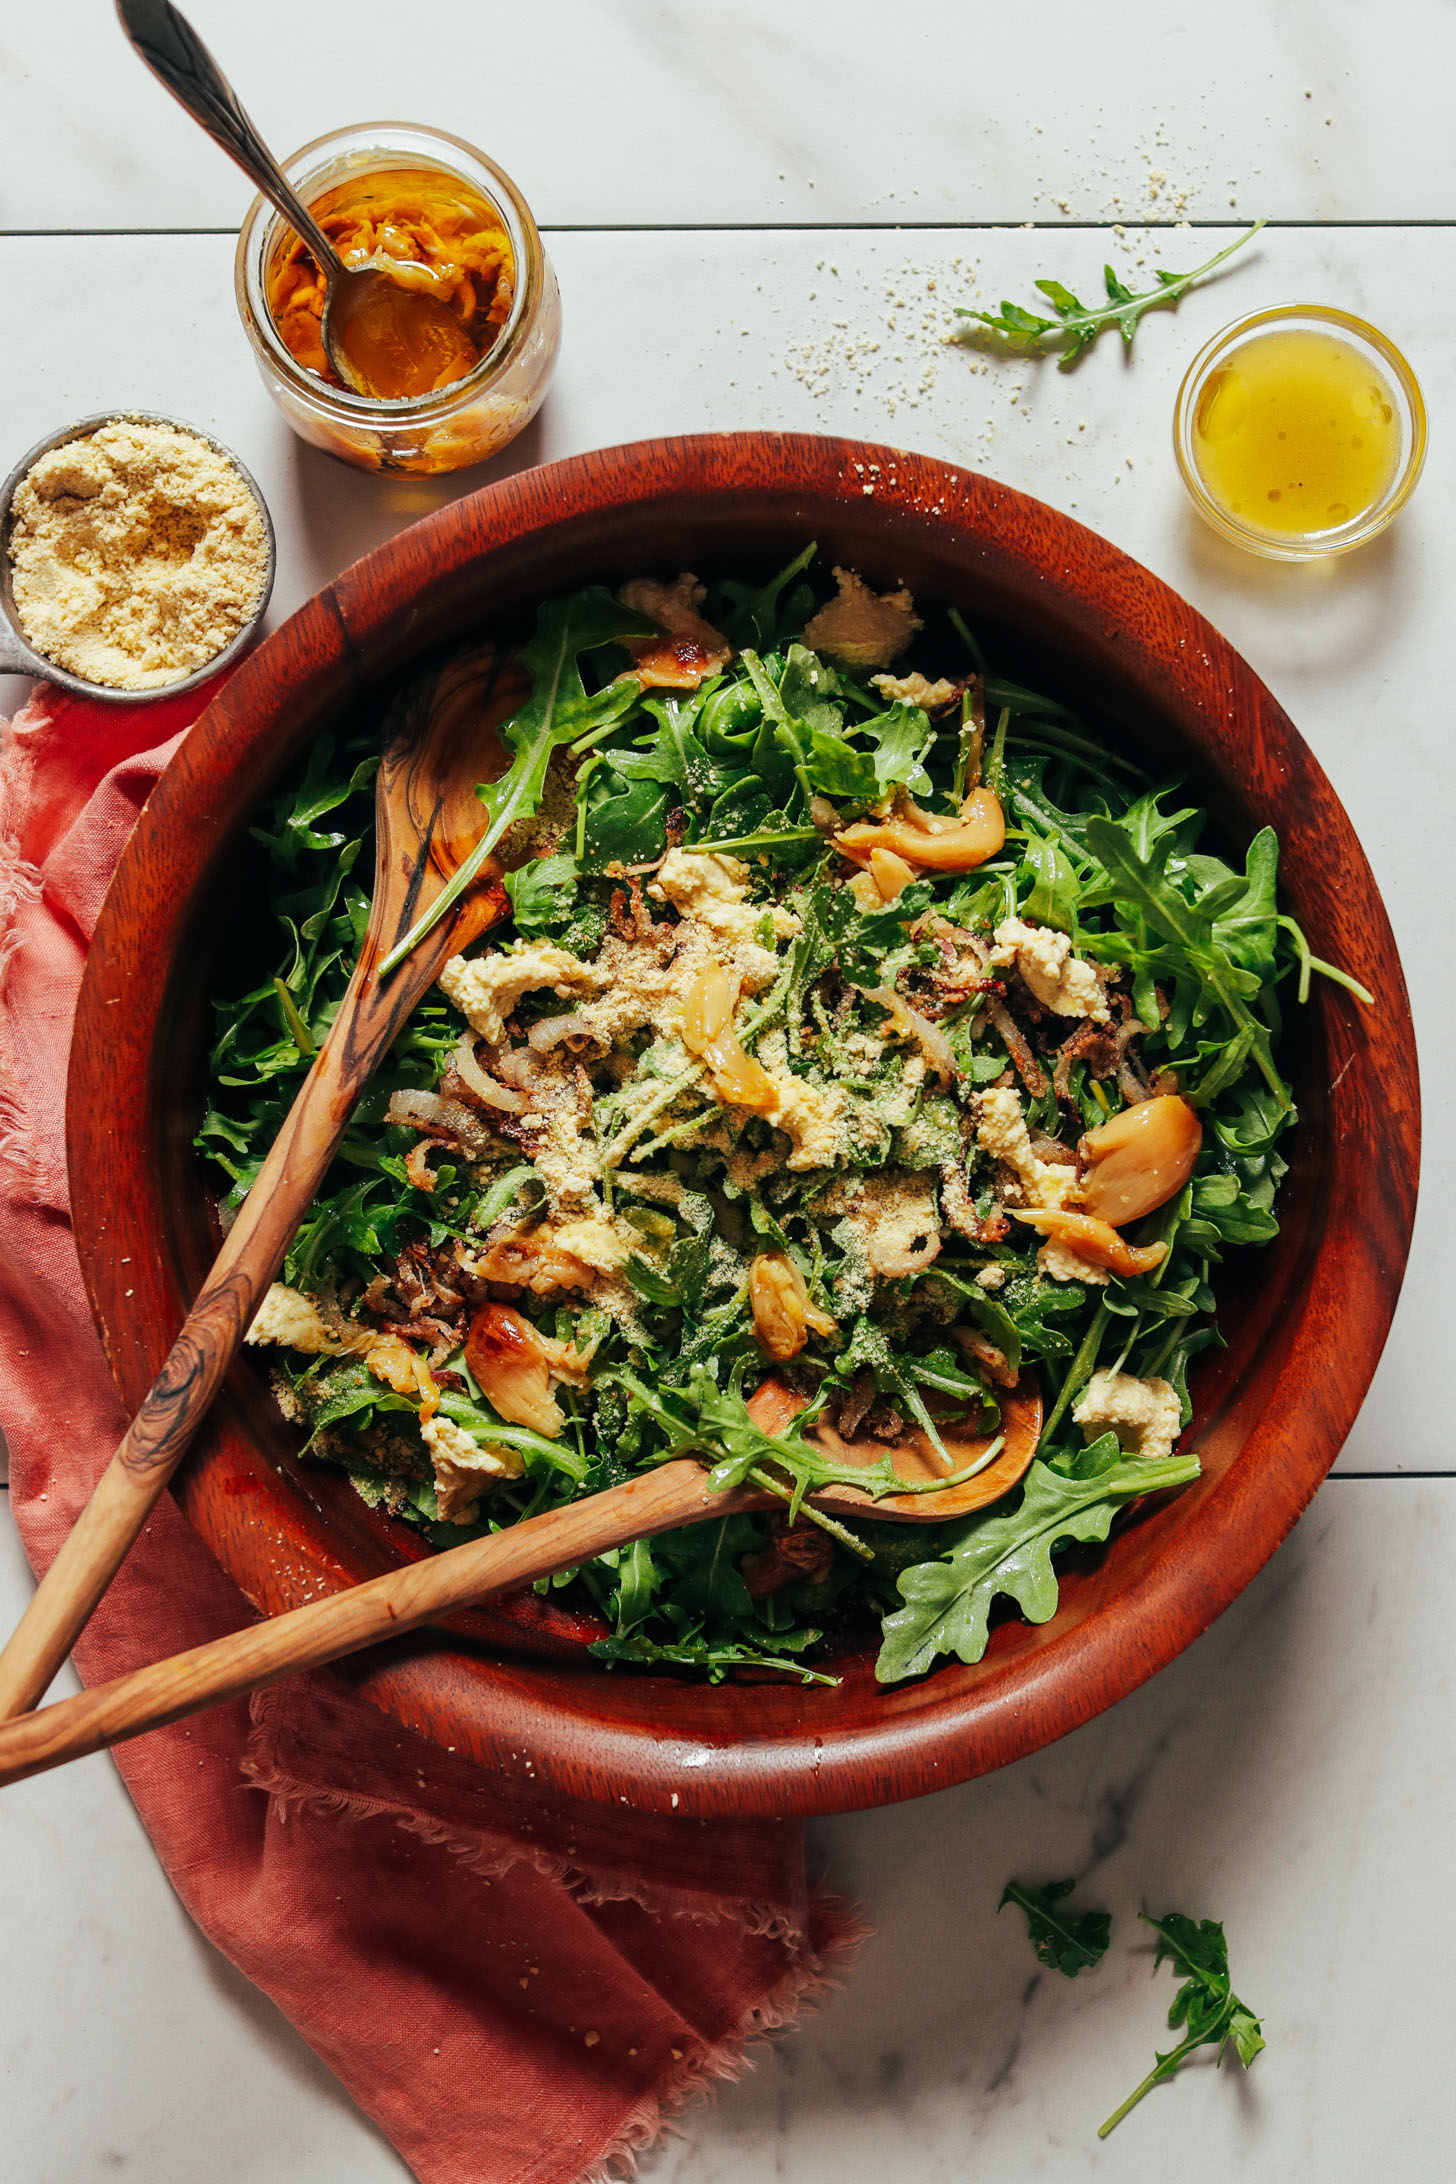 Big salad bowl filled with our Lemony Arugula Salad recipe surrounded by ingredients used to make it